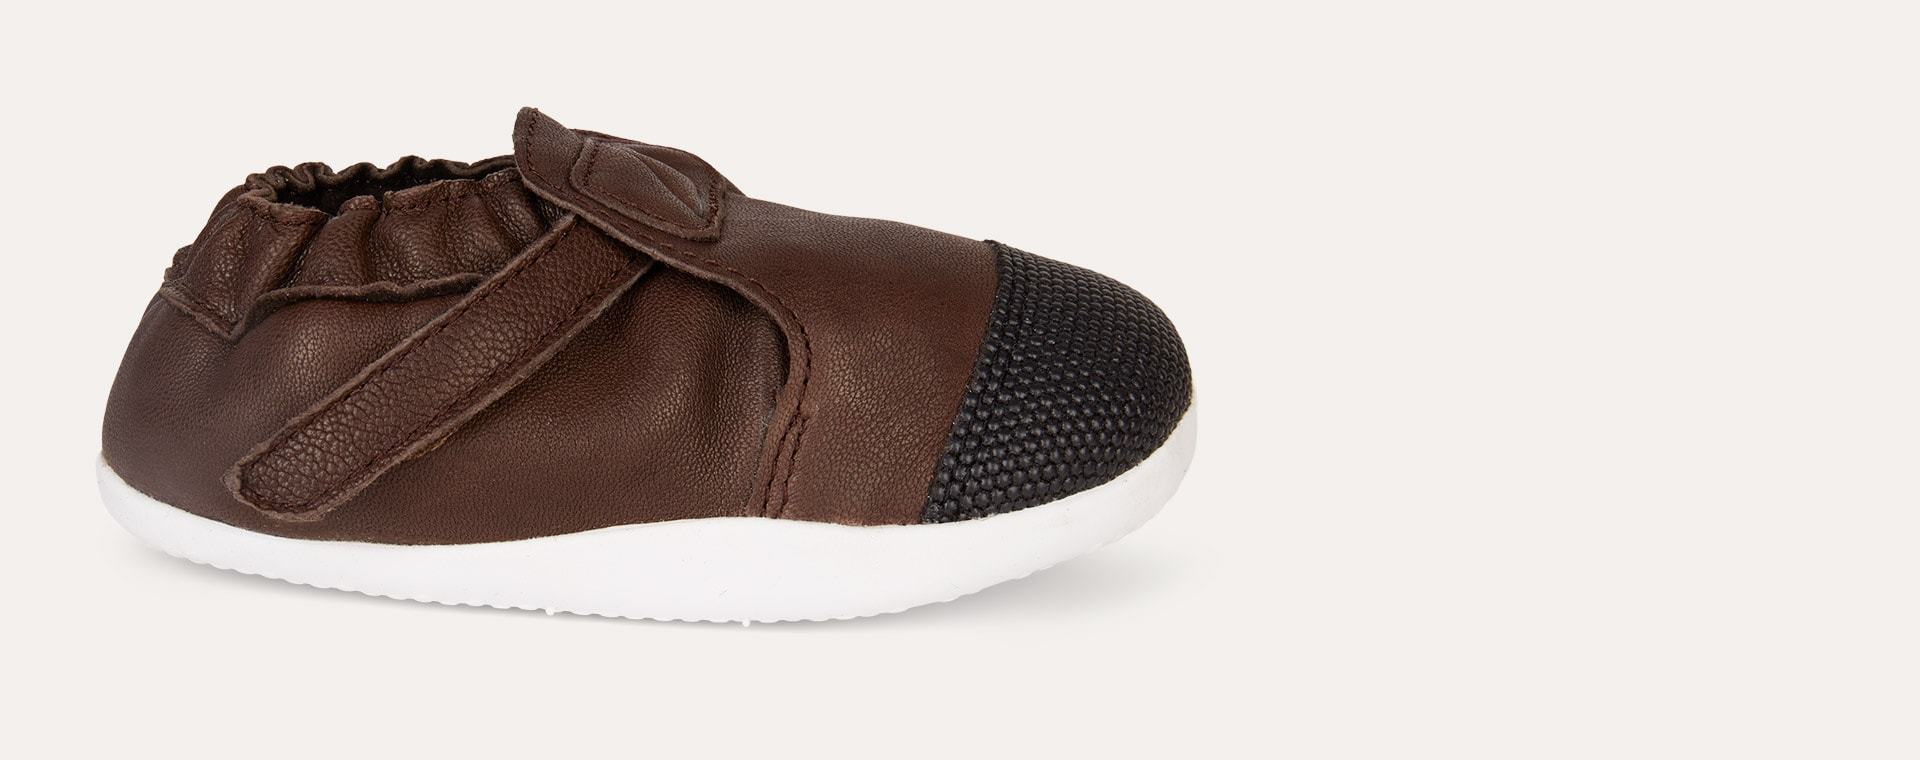 Mocha Bobux Xplorer Arctic One Trainer